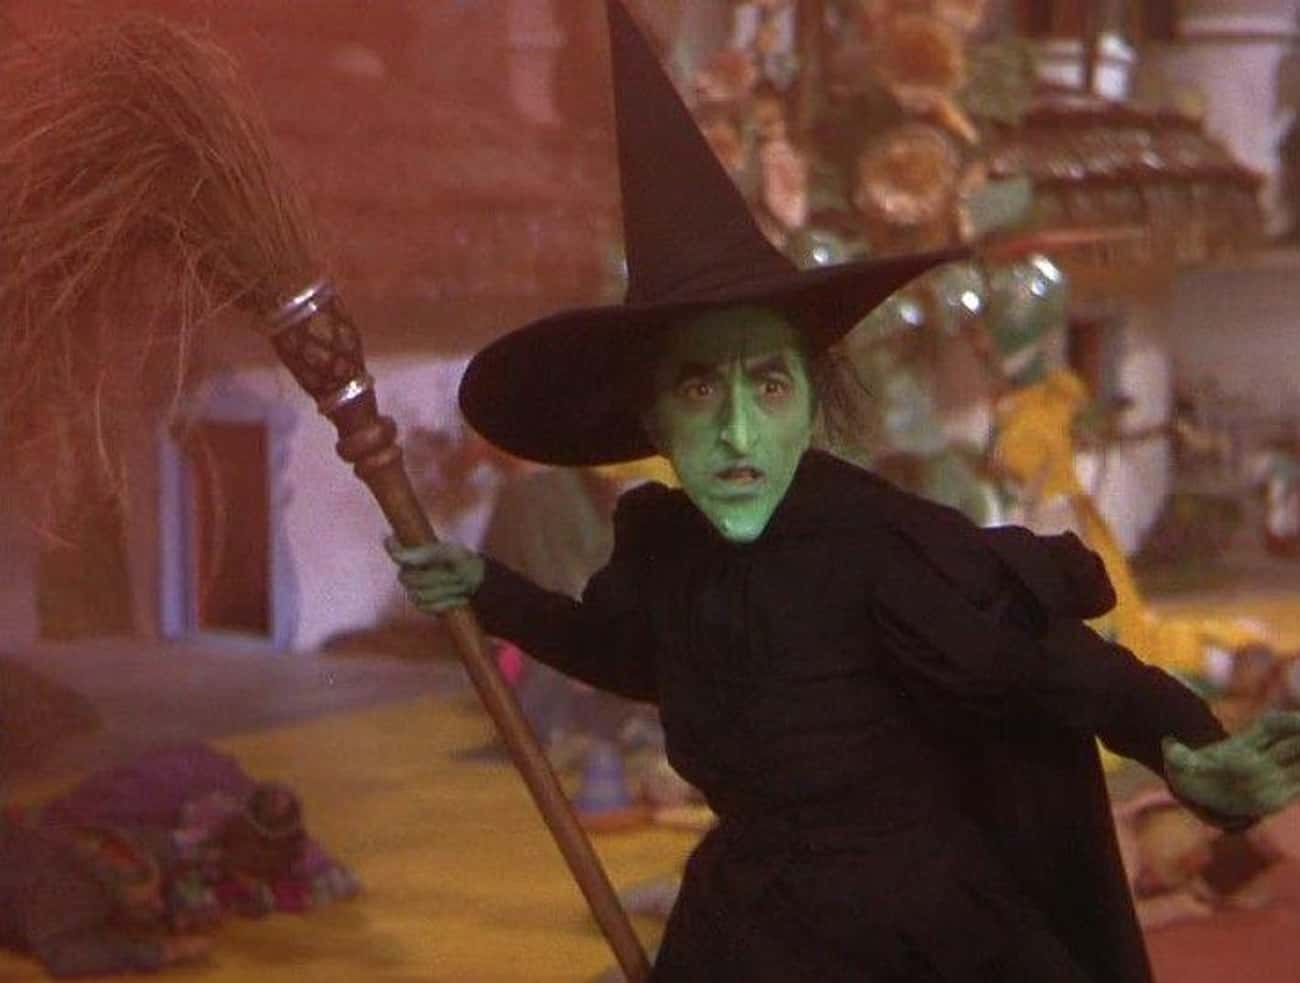 The Wicked Witch Got Burned On is listed (or ranked) 3 on the list 15 Nightmare Stories From Behind-The-Scenes Of 'The Wizard of Oz'